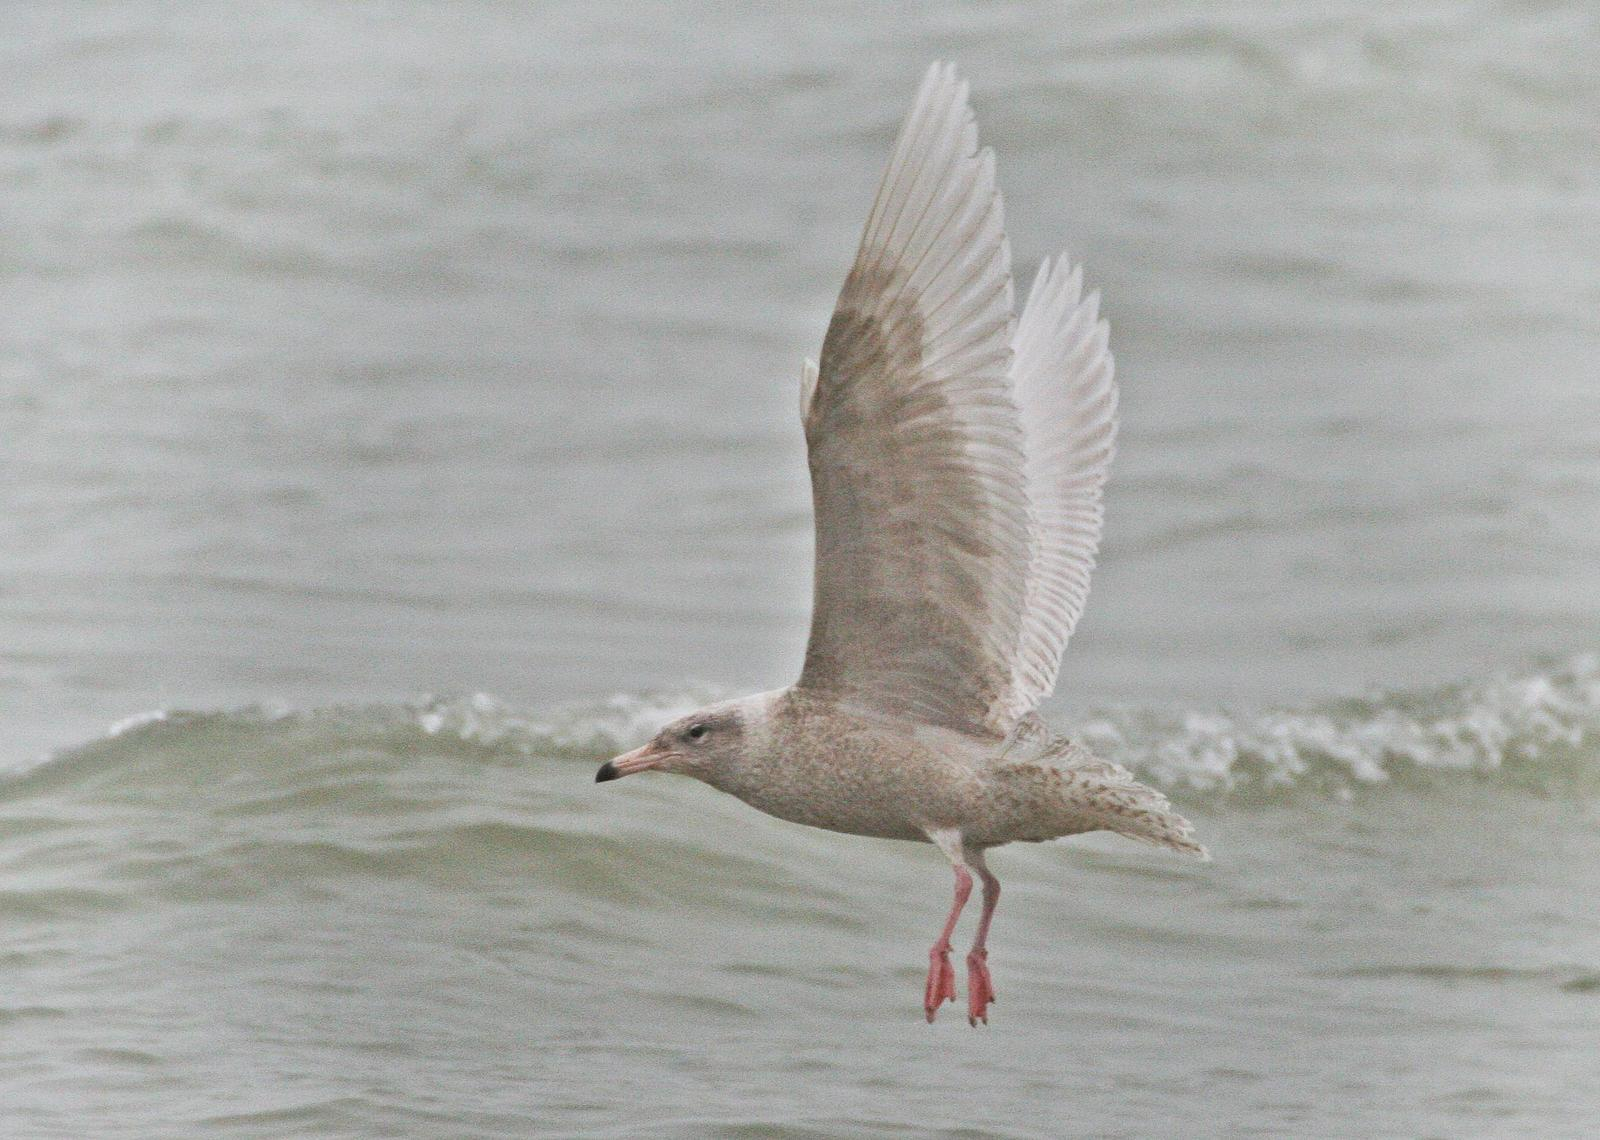 Glaucous Gull Photo by Andrew Theus